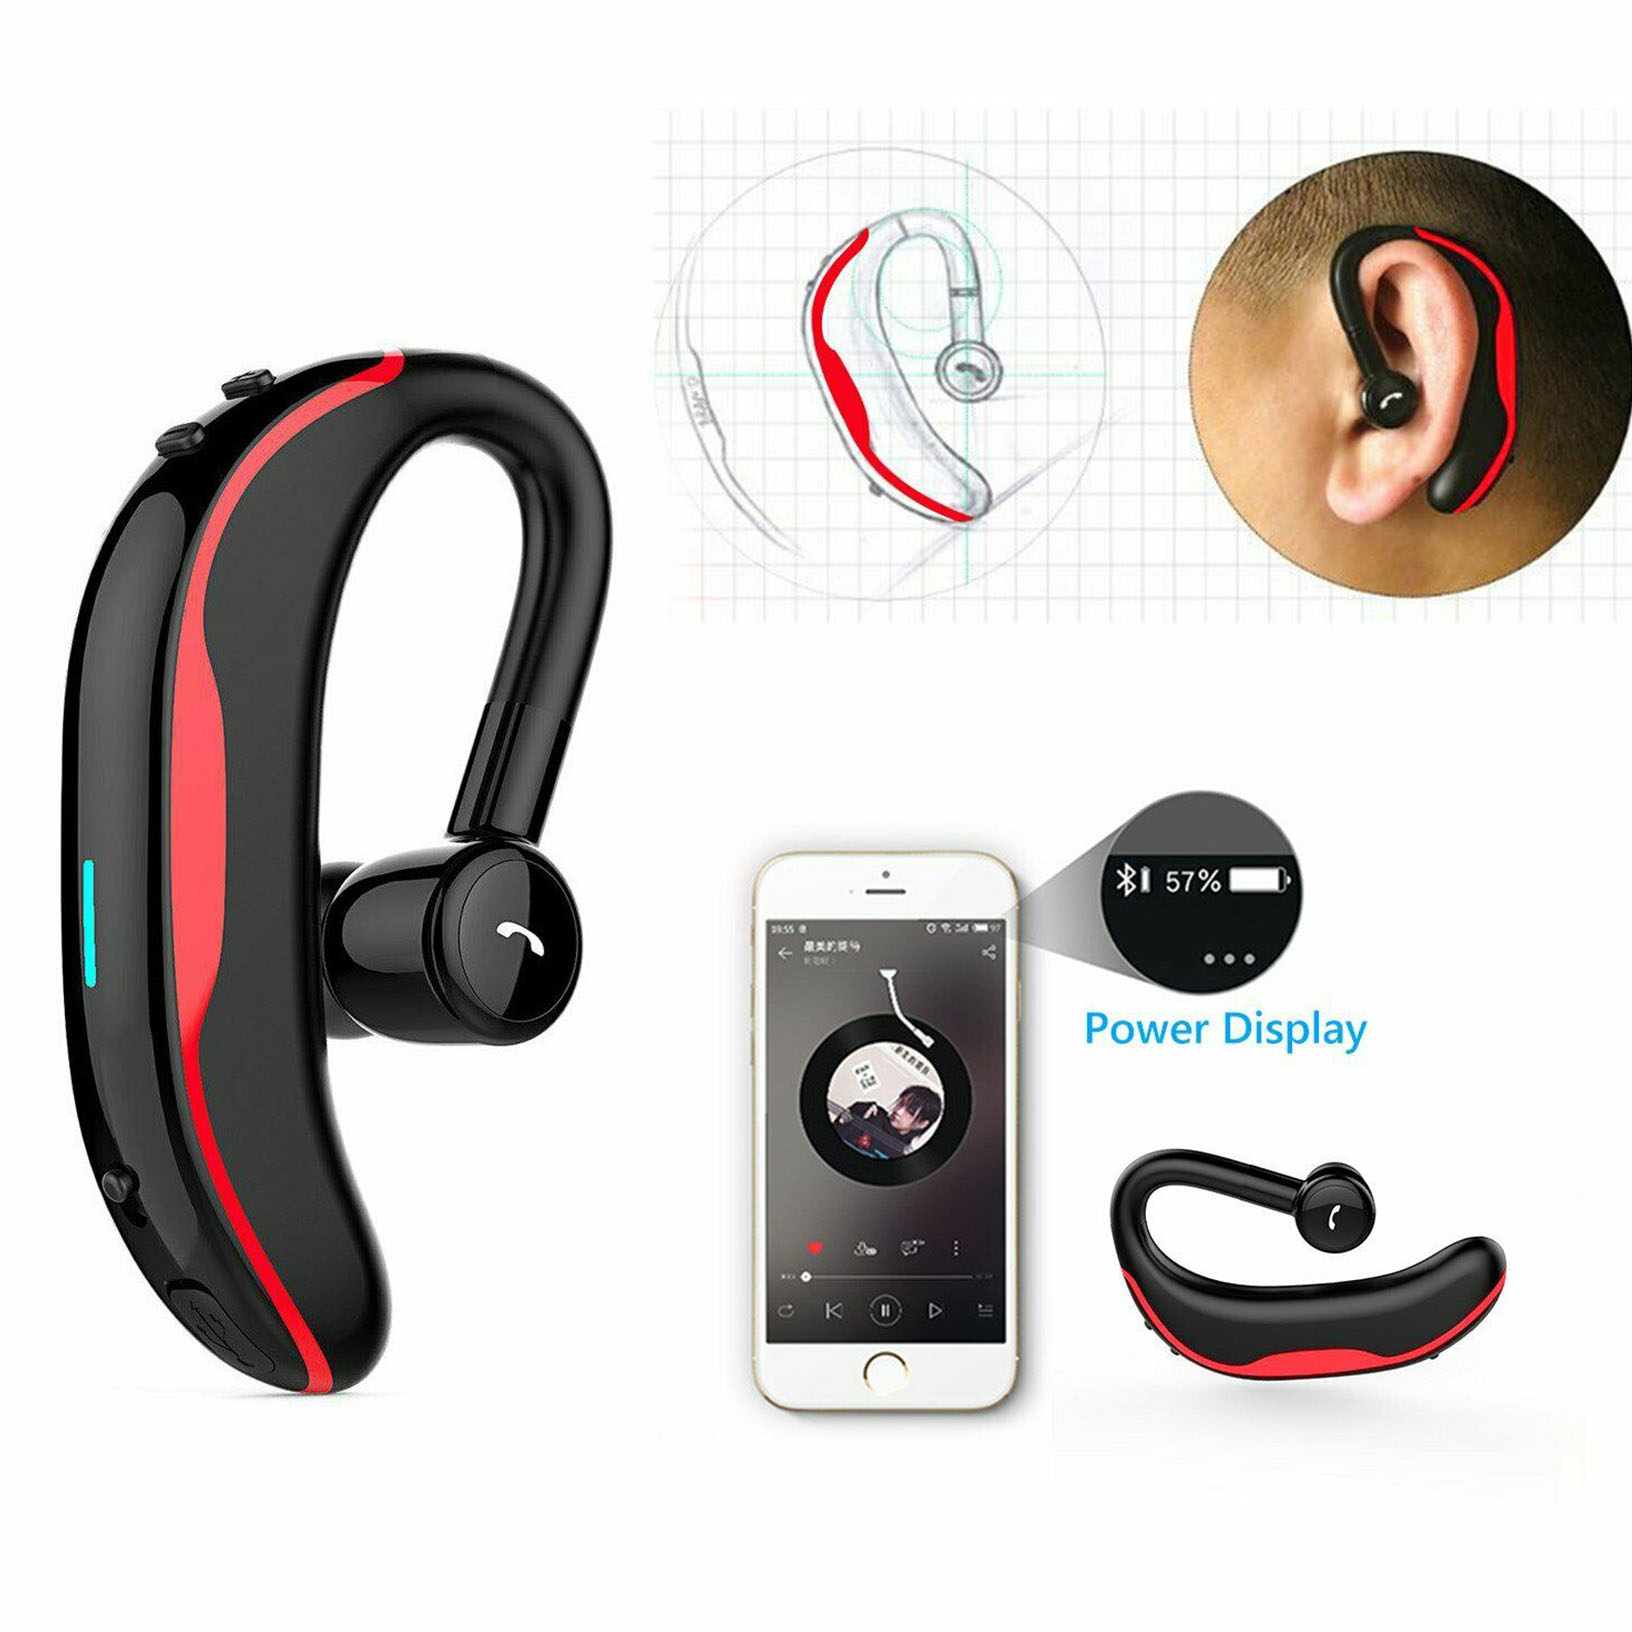 Wireless Headset Bluetooth Hands Free Calling With Clear Voice Earbuds Ebay